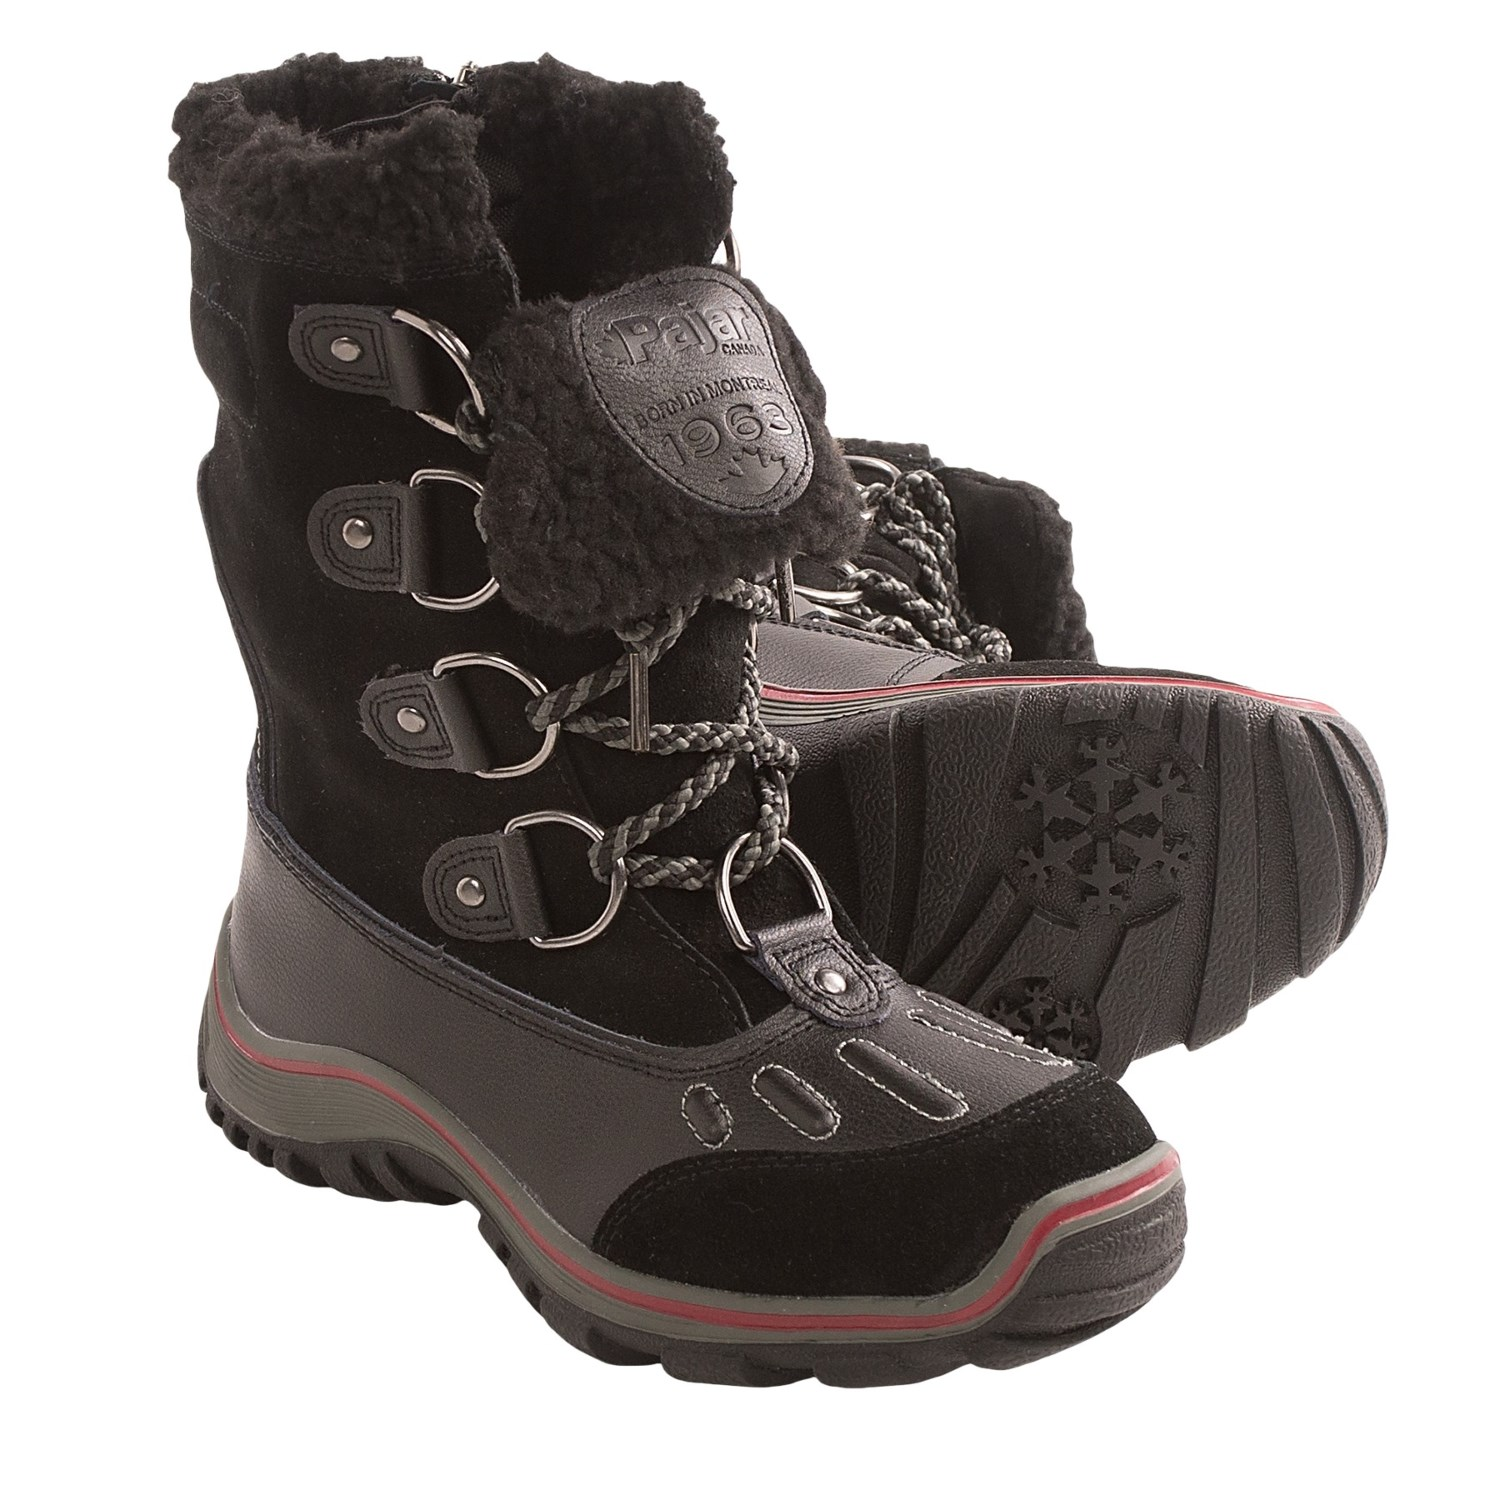 Winter Boots Canada Stores | NATIONAL SHERIFFS' ASSOCIATION